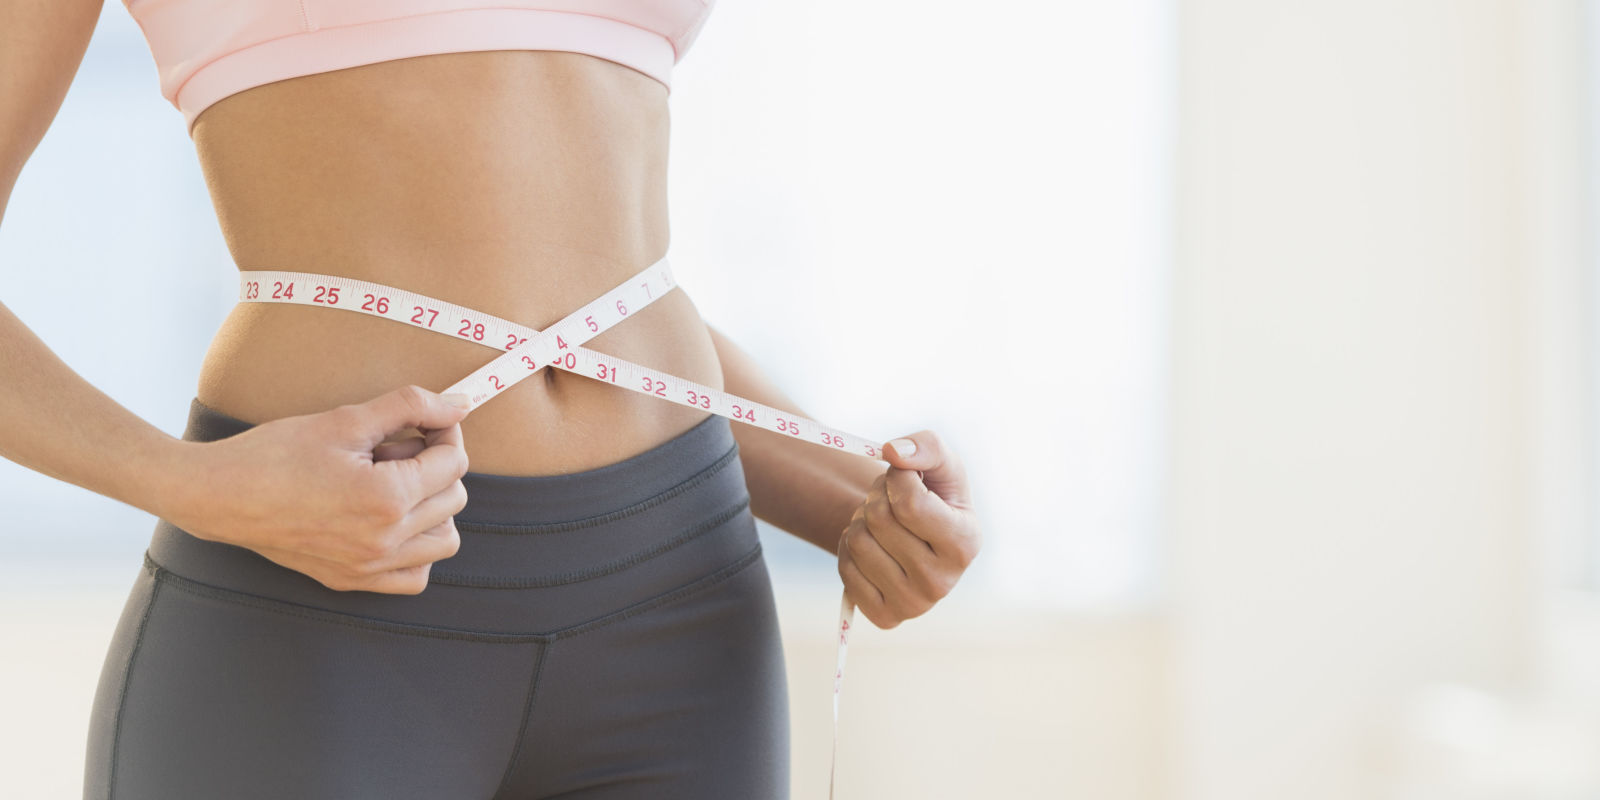 The Right Way To Lose Fat: How To Exercise